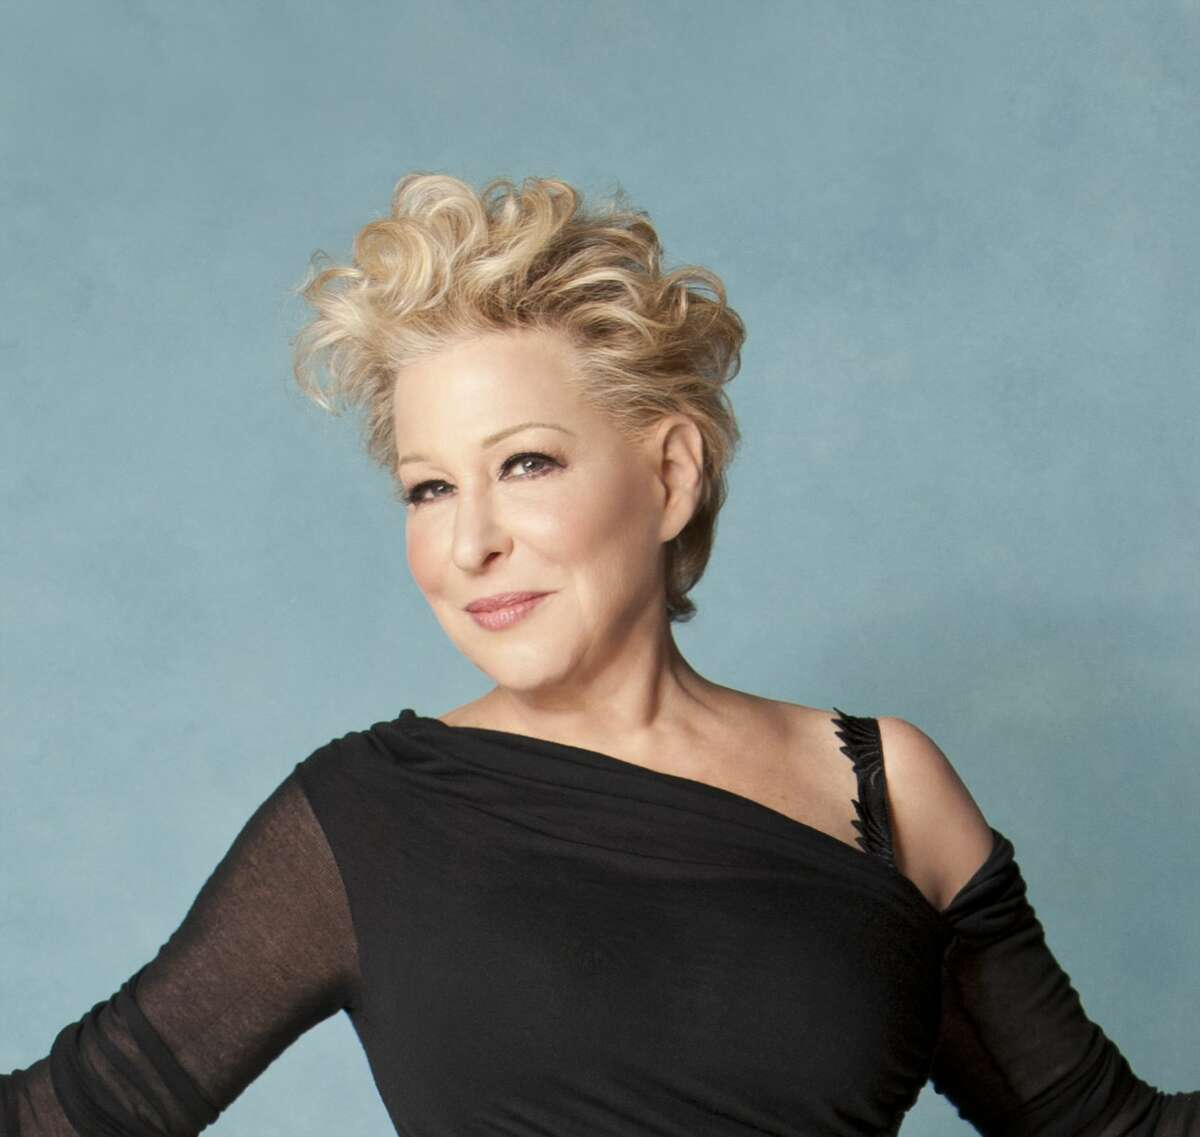 Bette Midler headlines the Brilliant Lecture series, where she will discuss her career ups and downs.